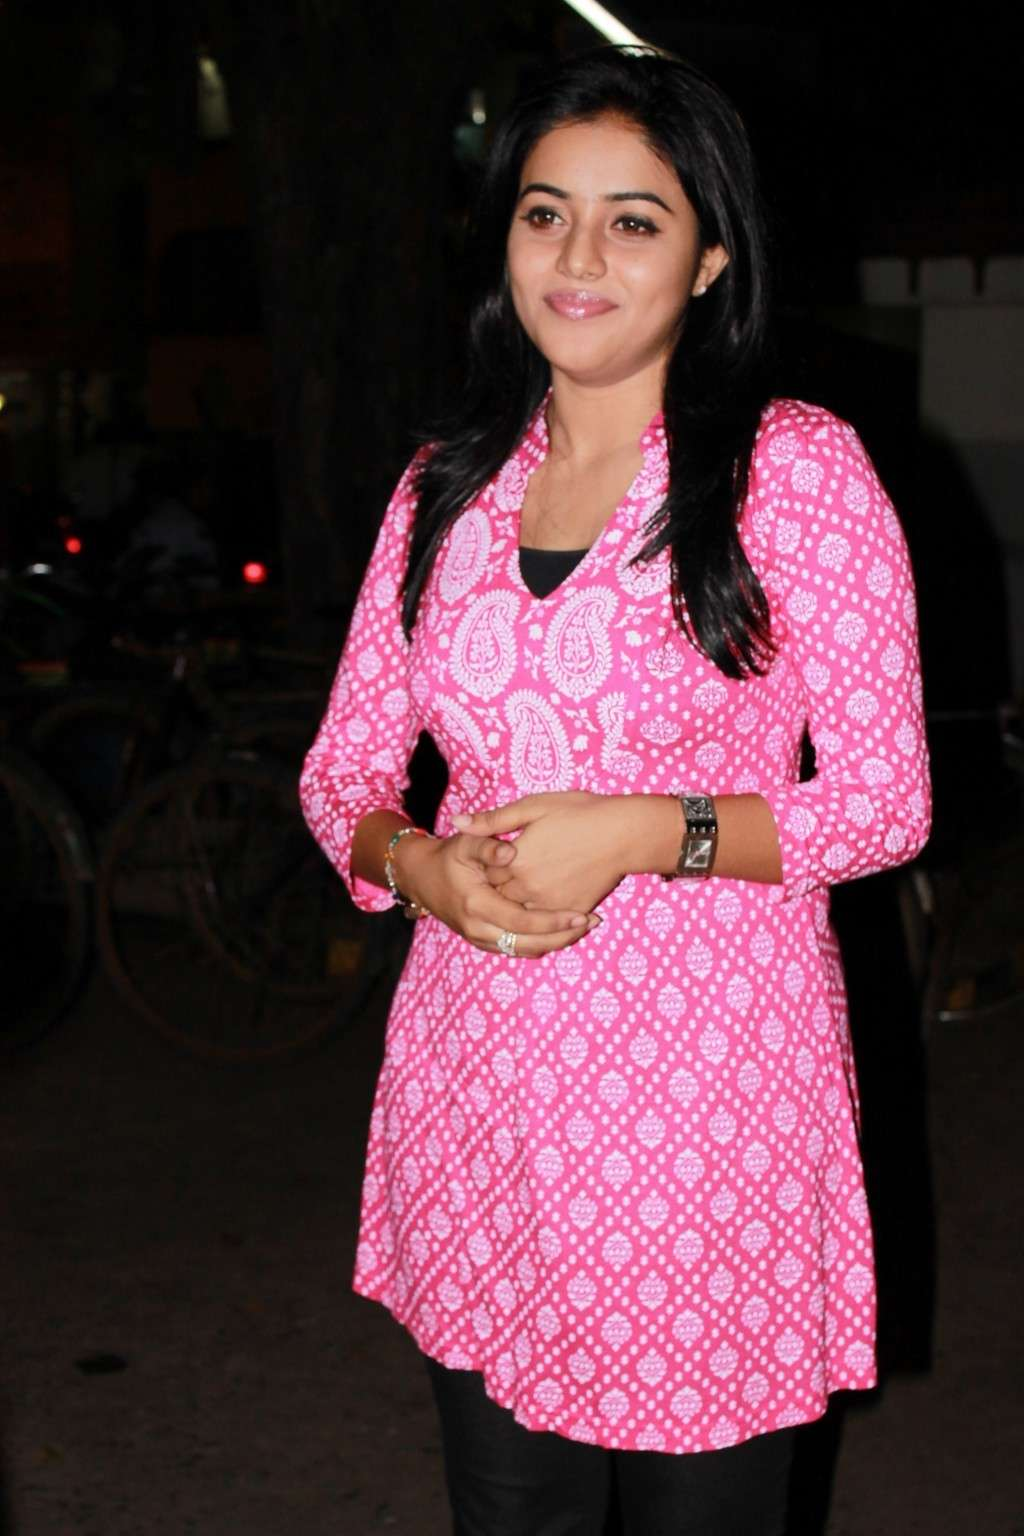 Poorna Bright in Pink Top Poorna14